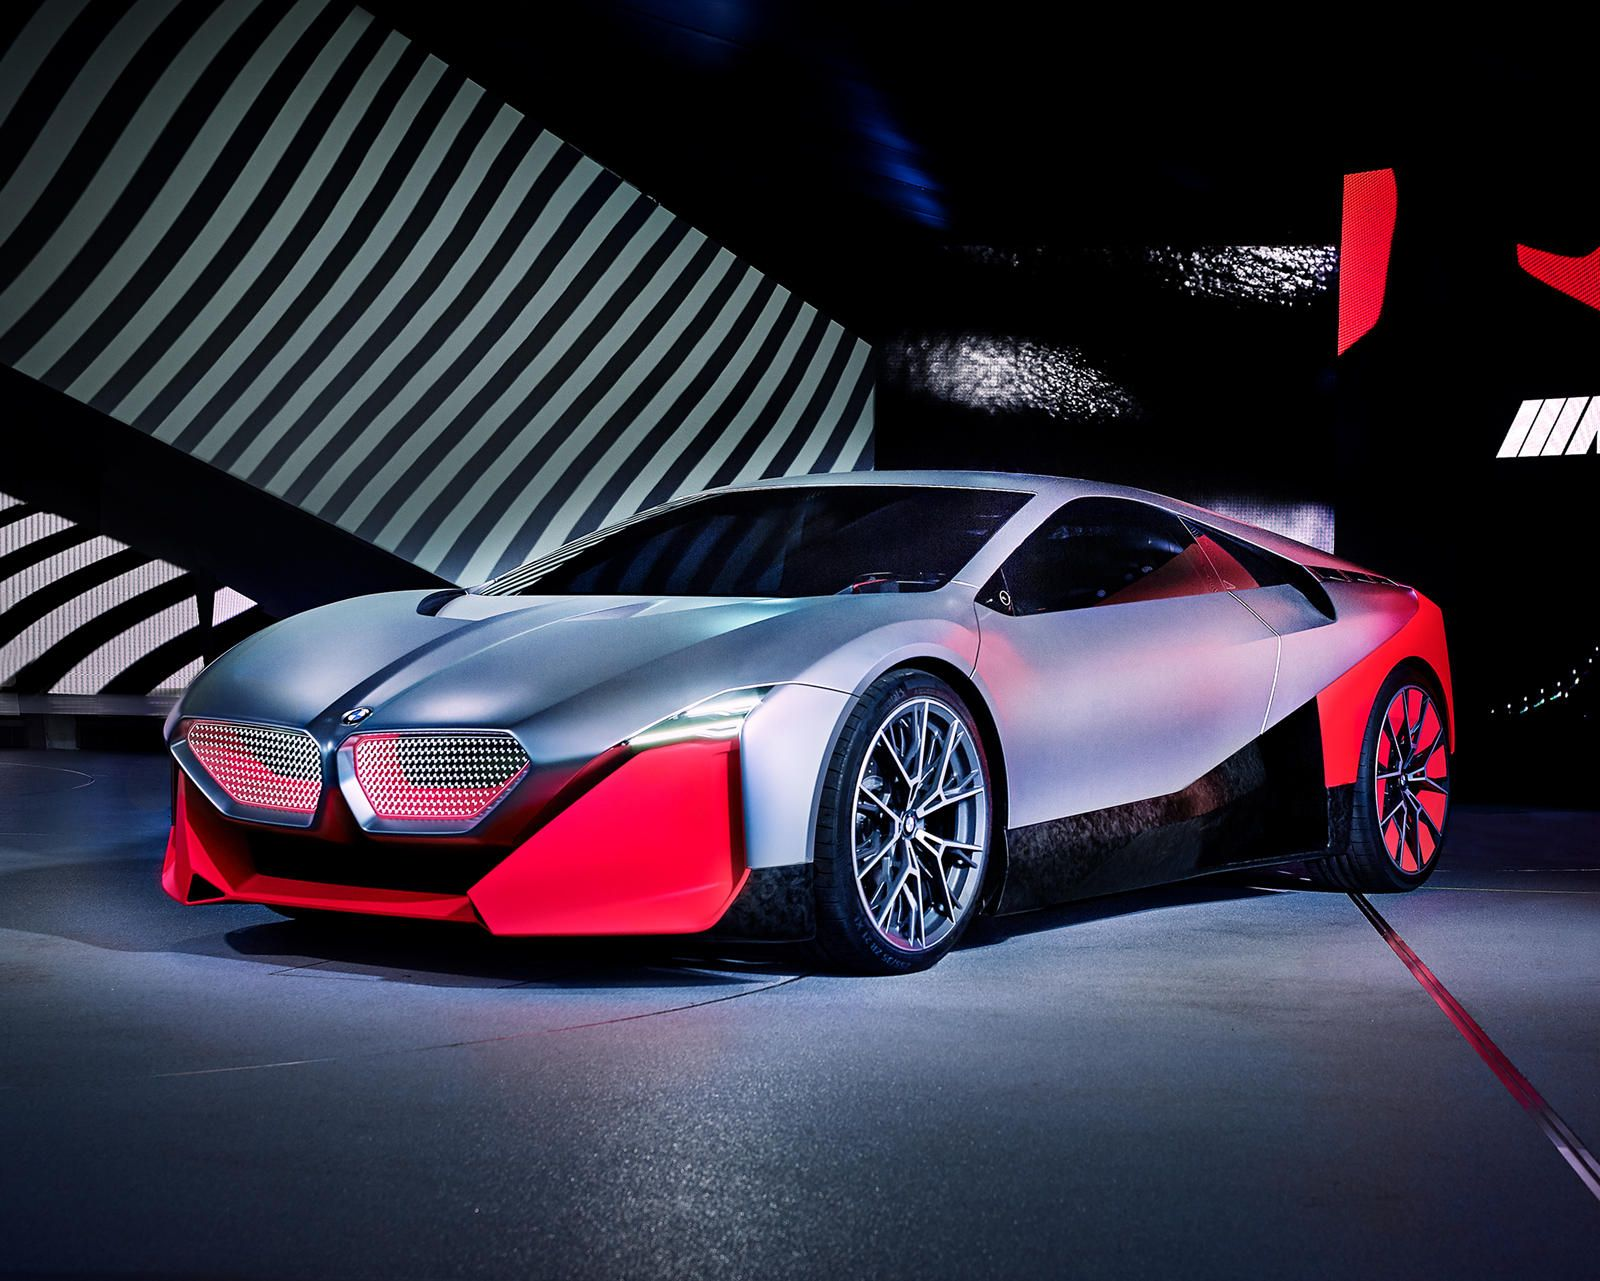 There Are New Details About Bmw S Next Supercar How Much Will It Cost When Will It Debut Read On In 2020 Sports Car Bmw Sport Bmw Sports Car